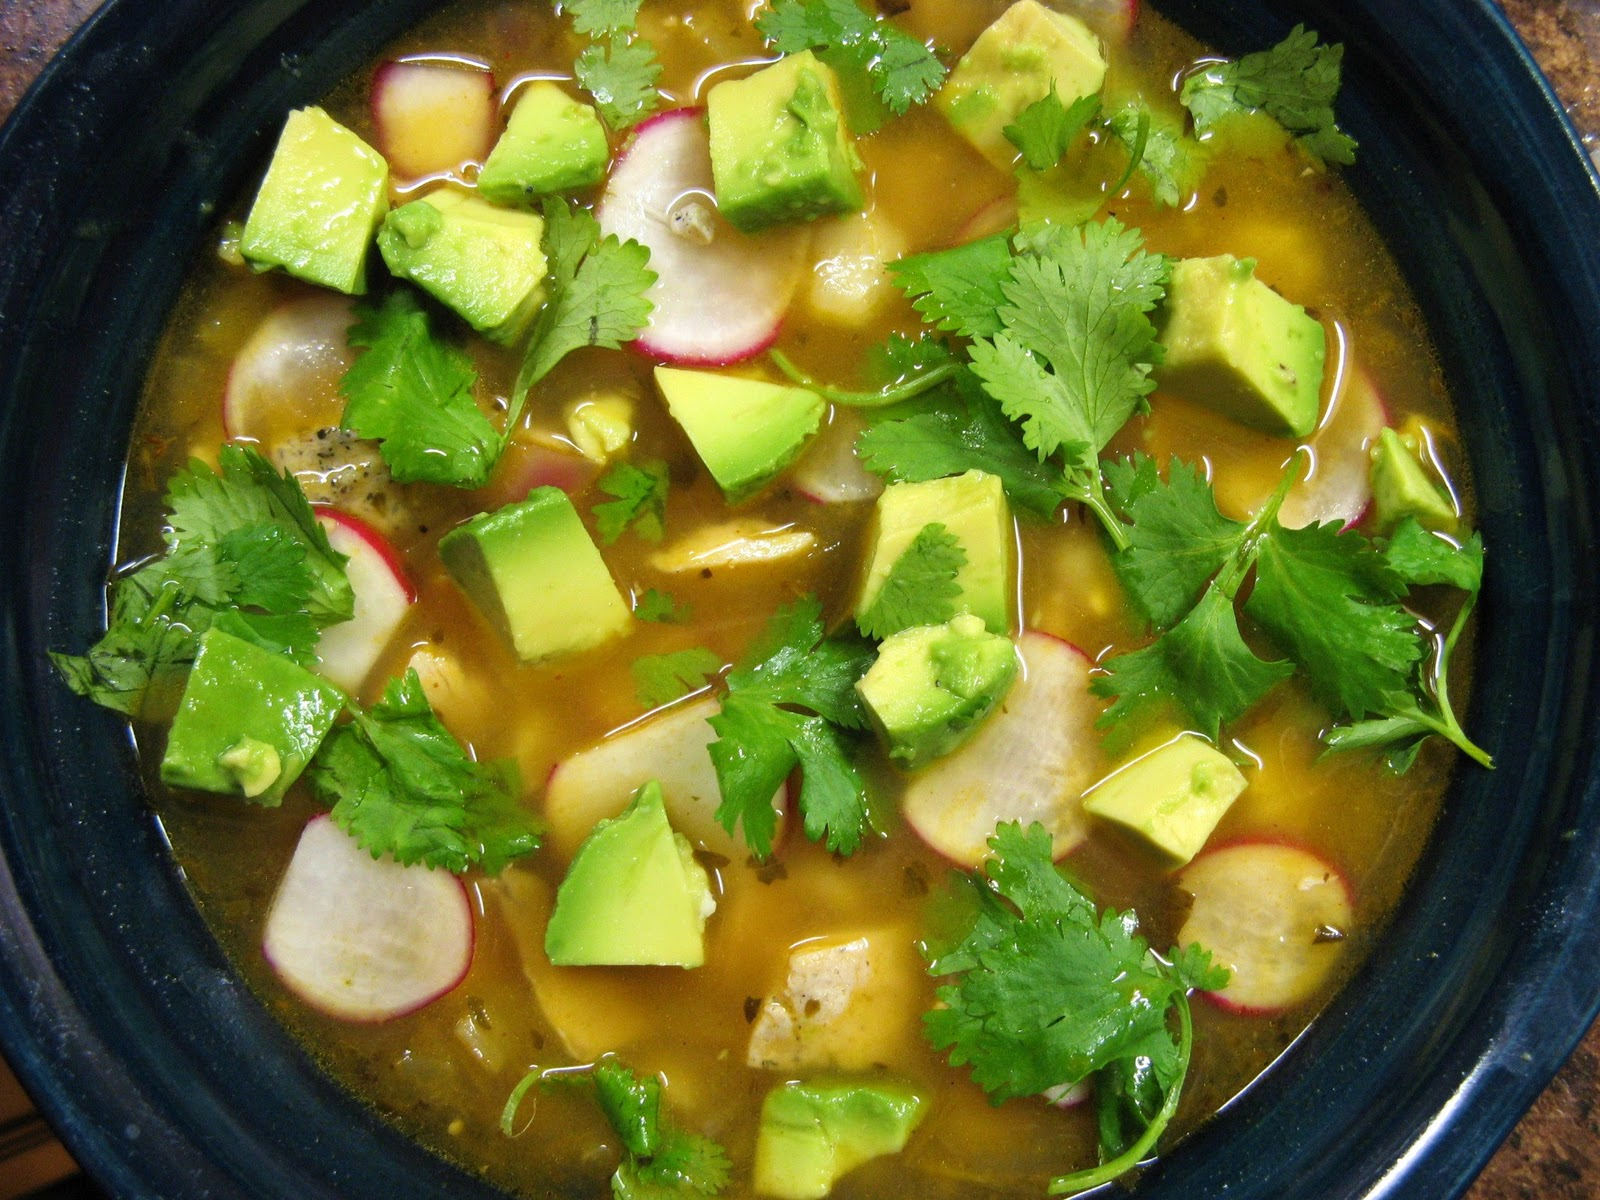 ... posole soup recipe on food52 green chile chicken posole soup recipes